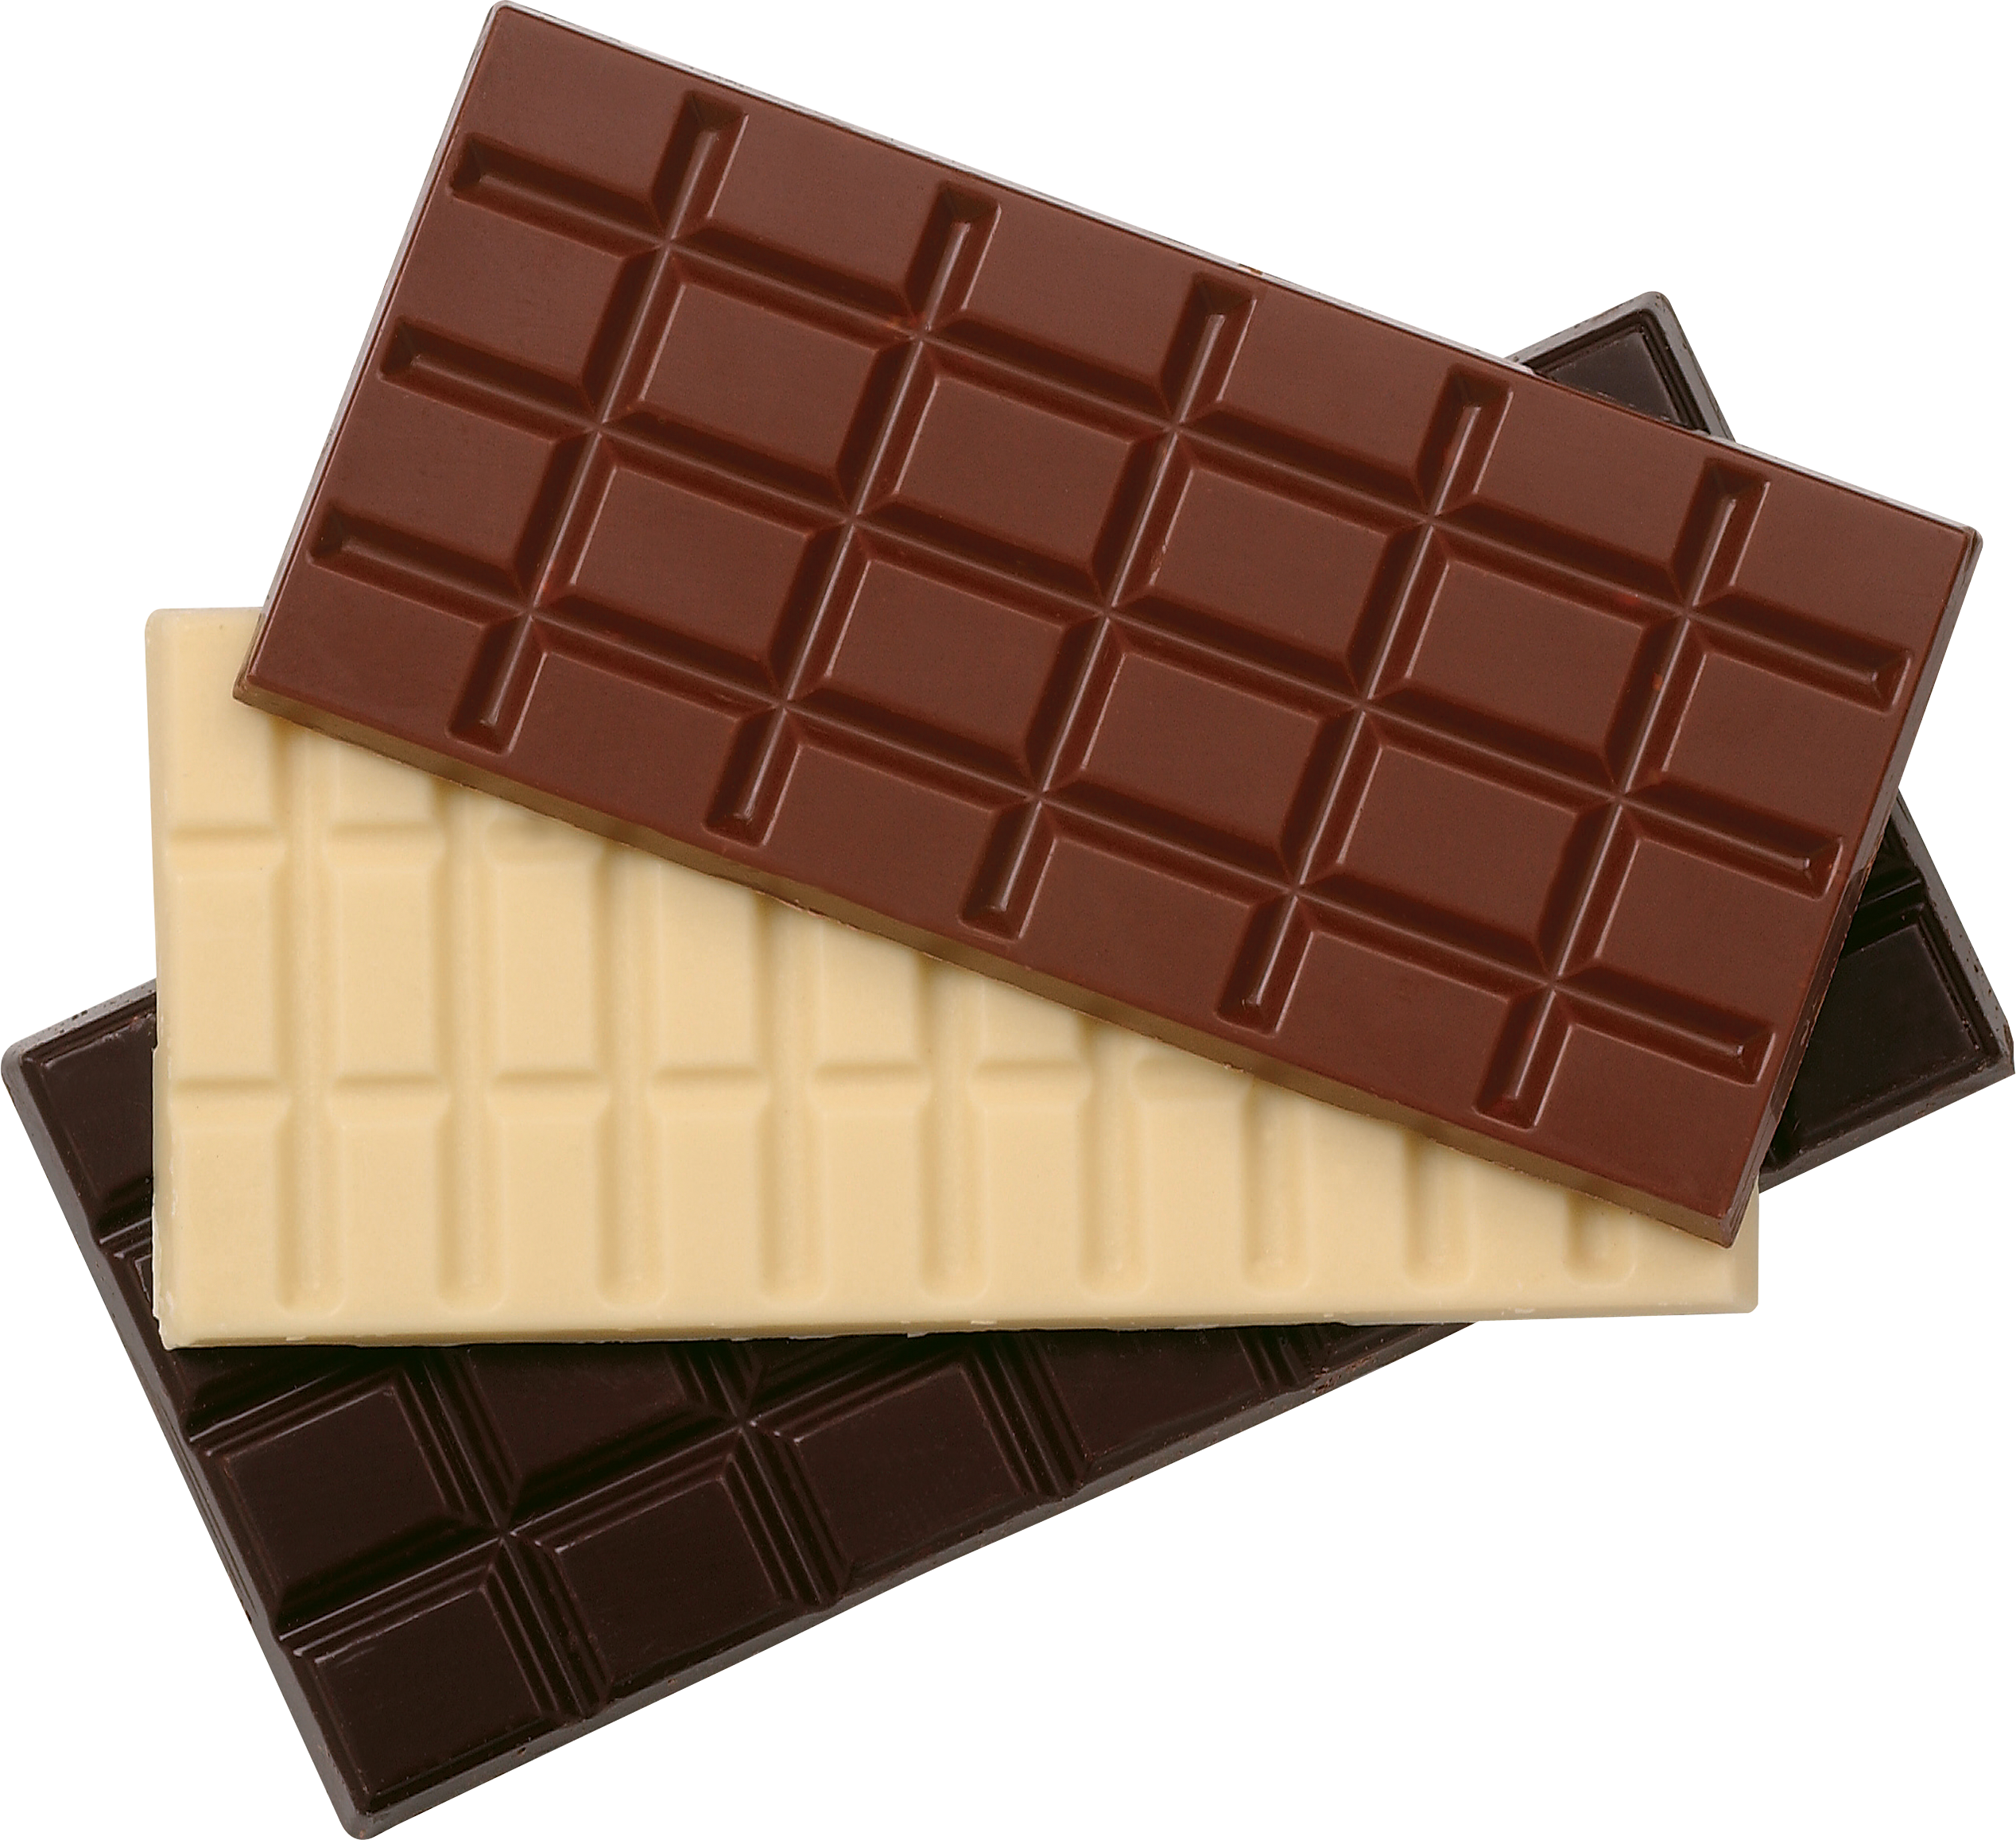 Chocolate PNG - 27294